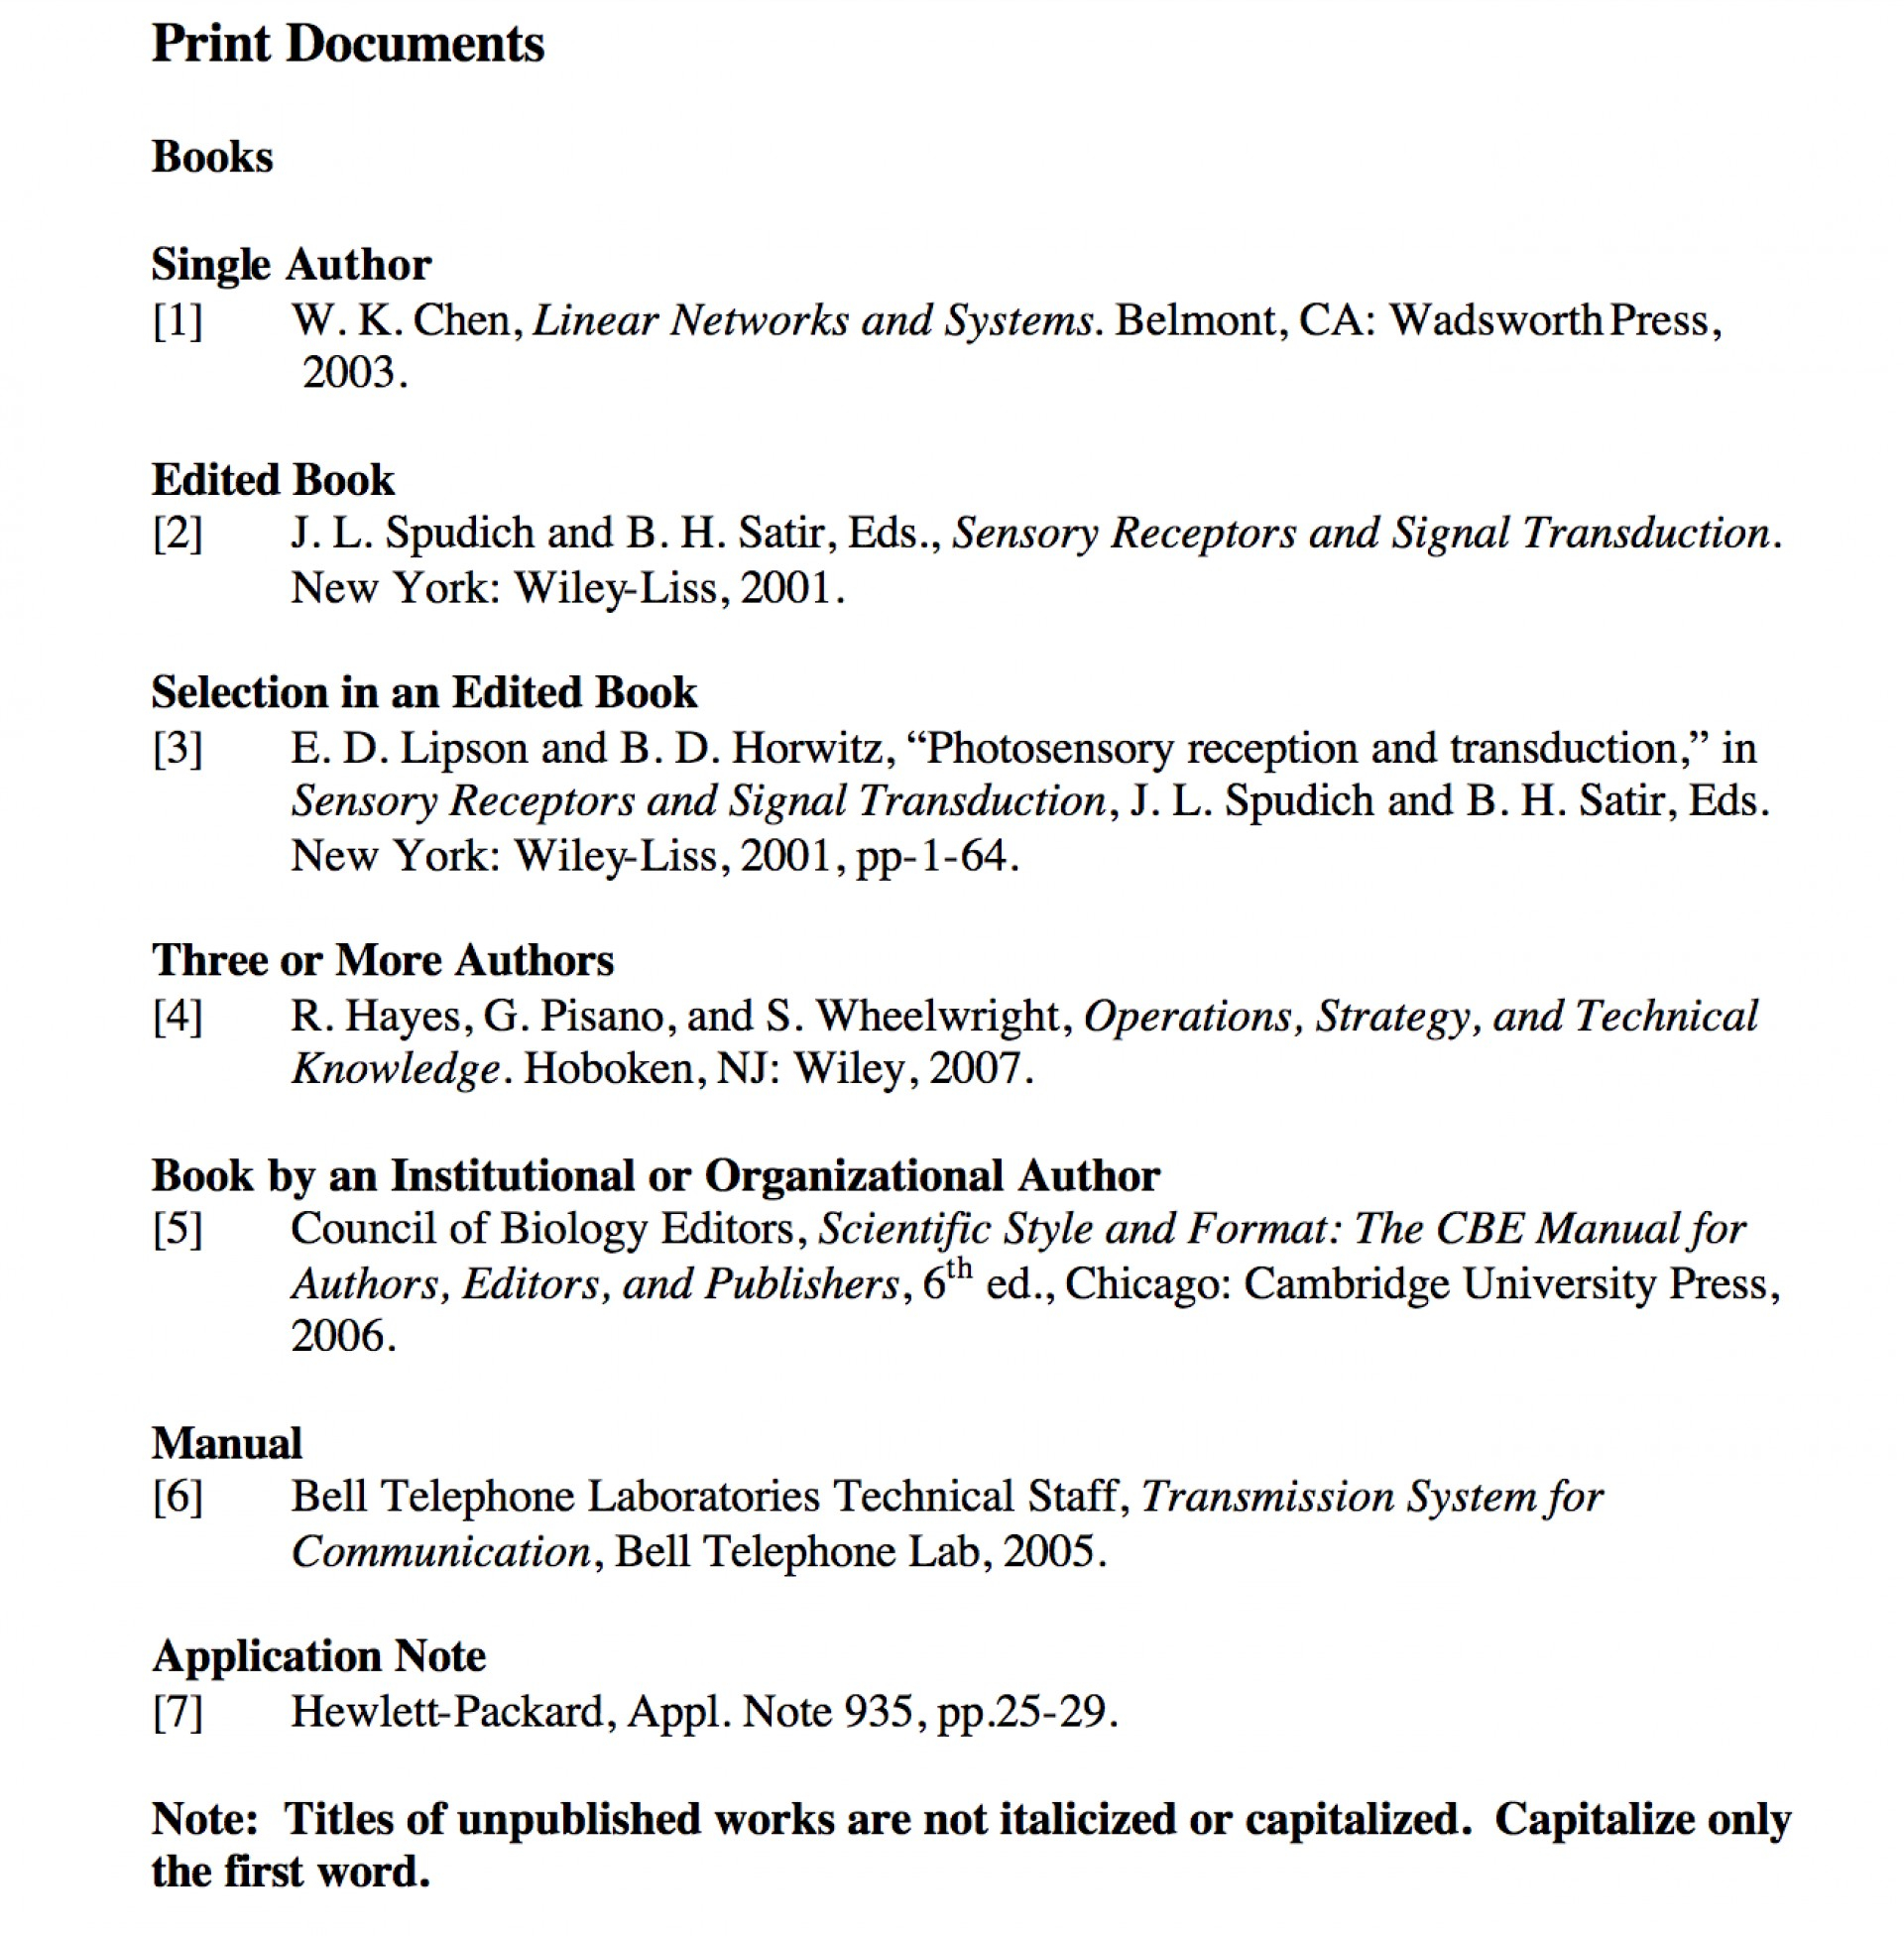 009 Research Paper Ieee Format Word New Journal Template in Ieee Template Word 2007